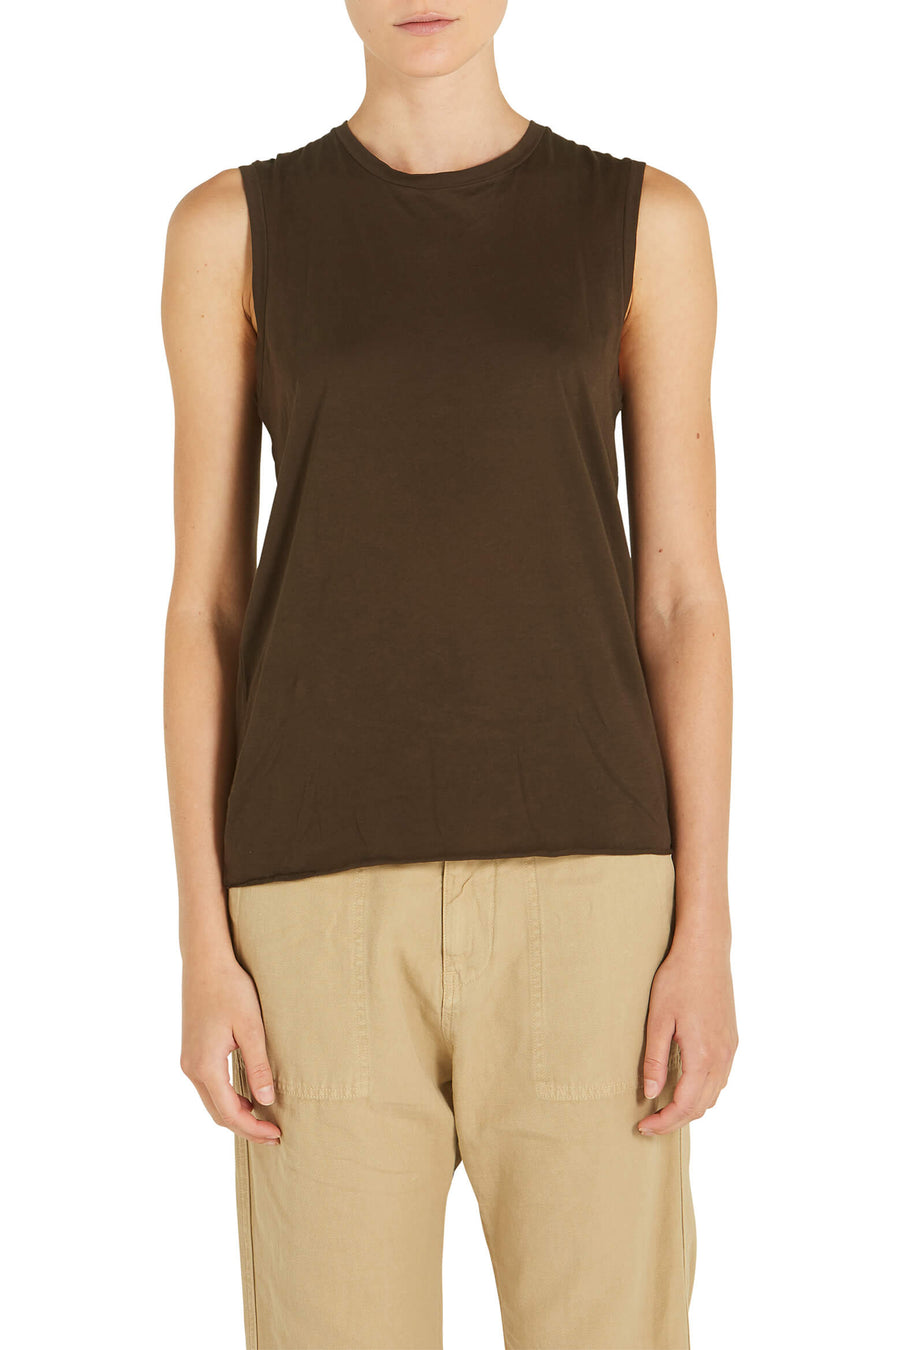 Nili Lotan Muscle Tee in Mocha from The New Trend